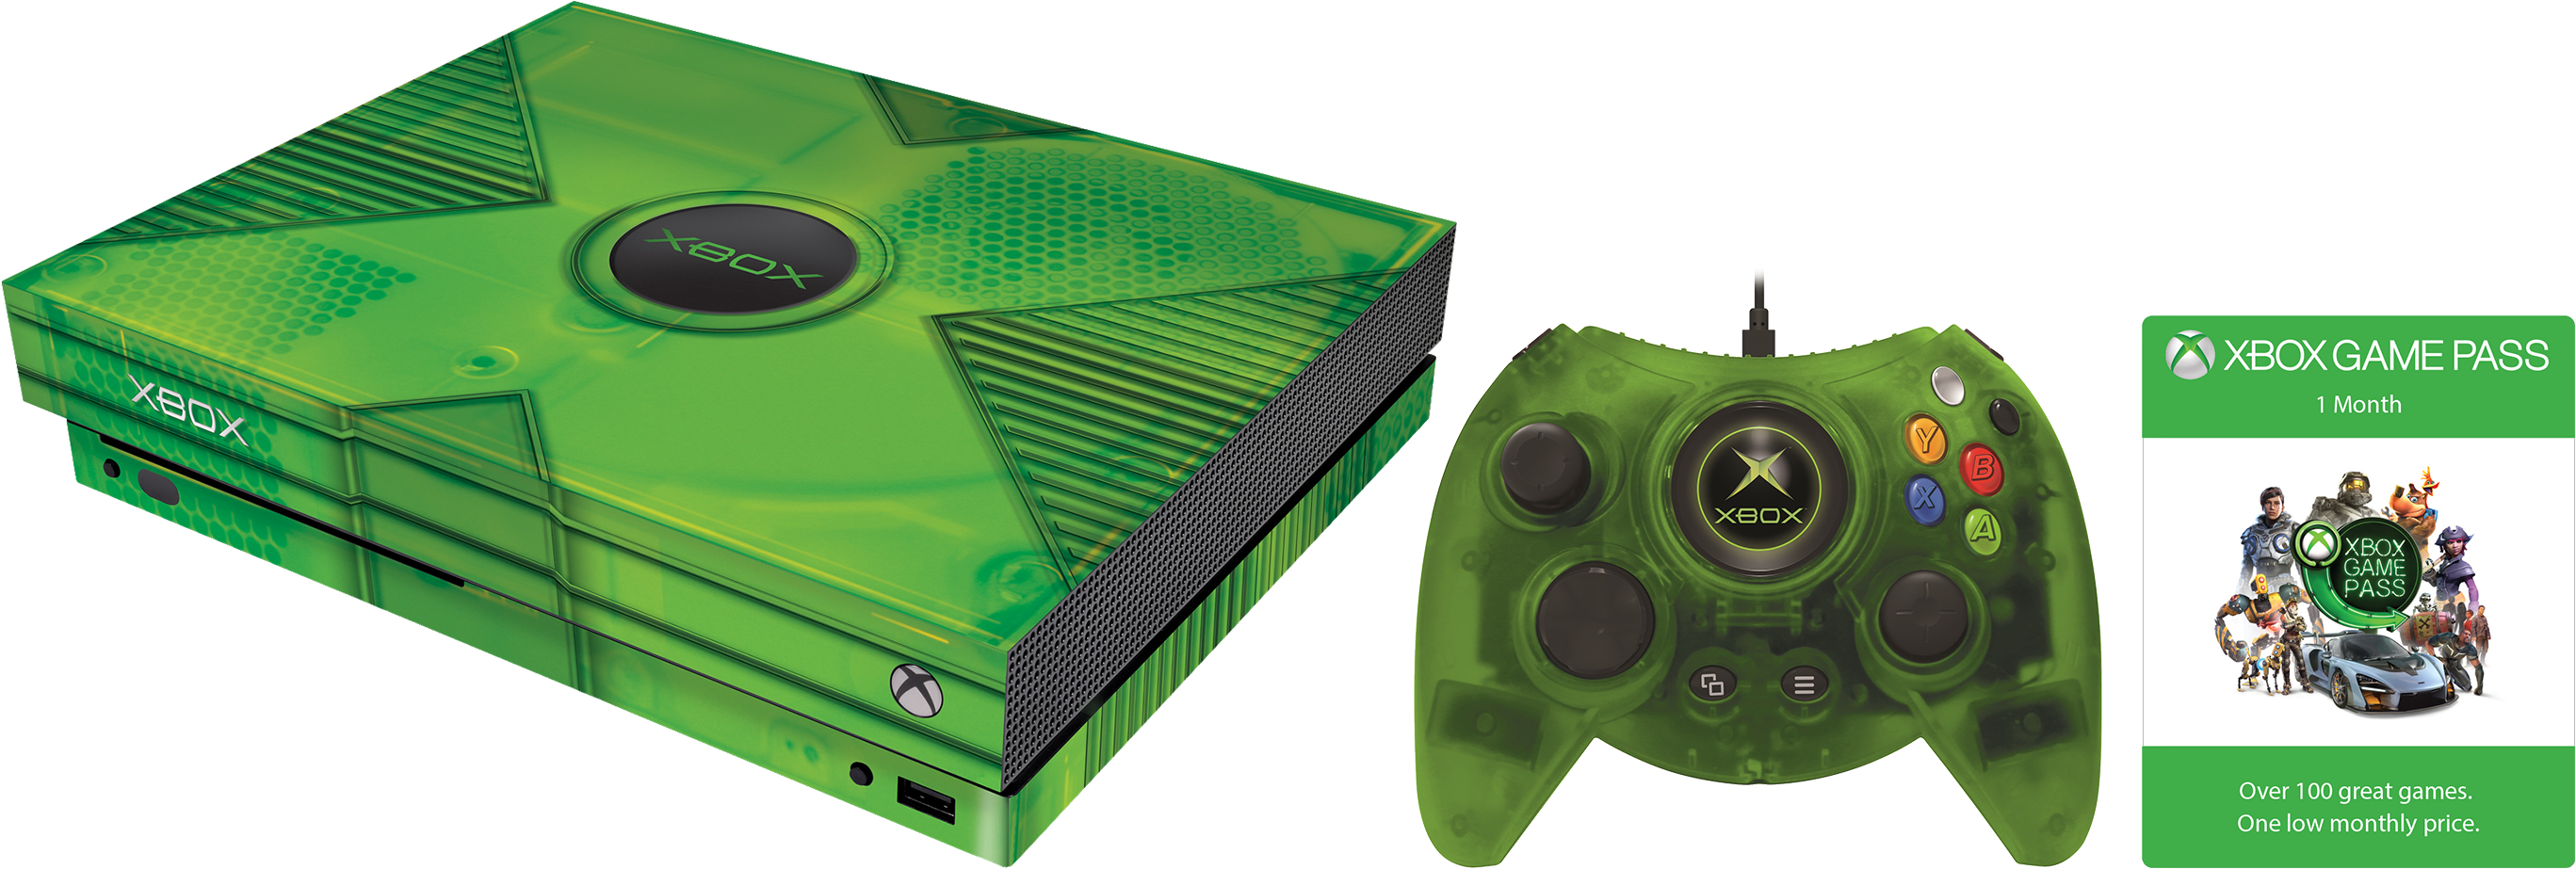 Hyperkin Xbox Classic Pack for Xbox One X.